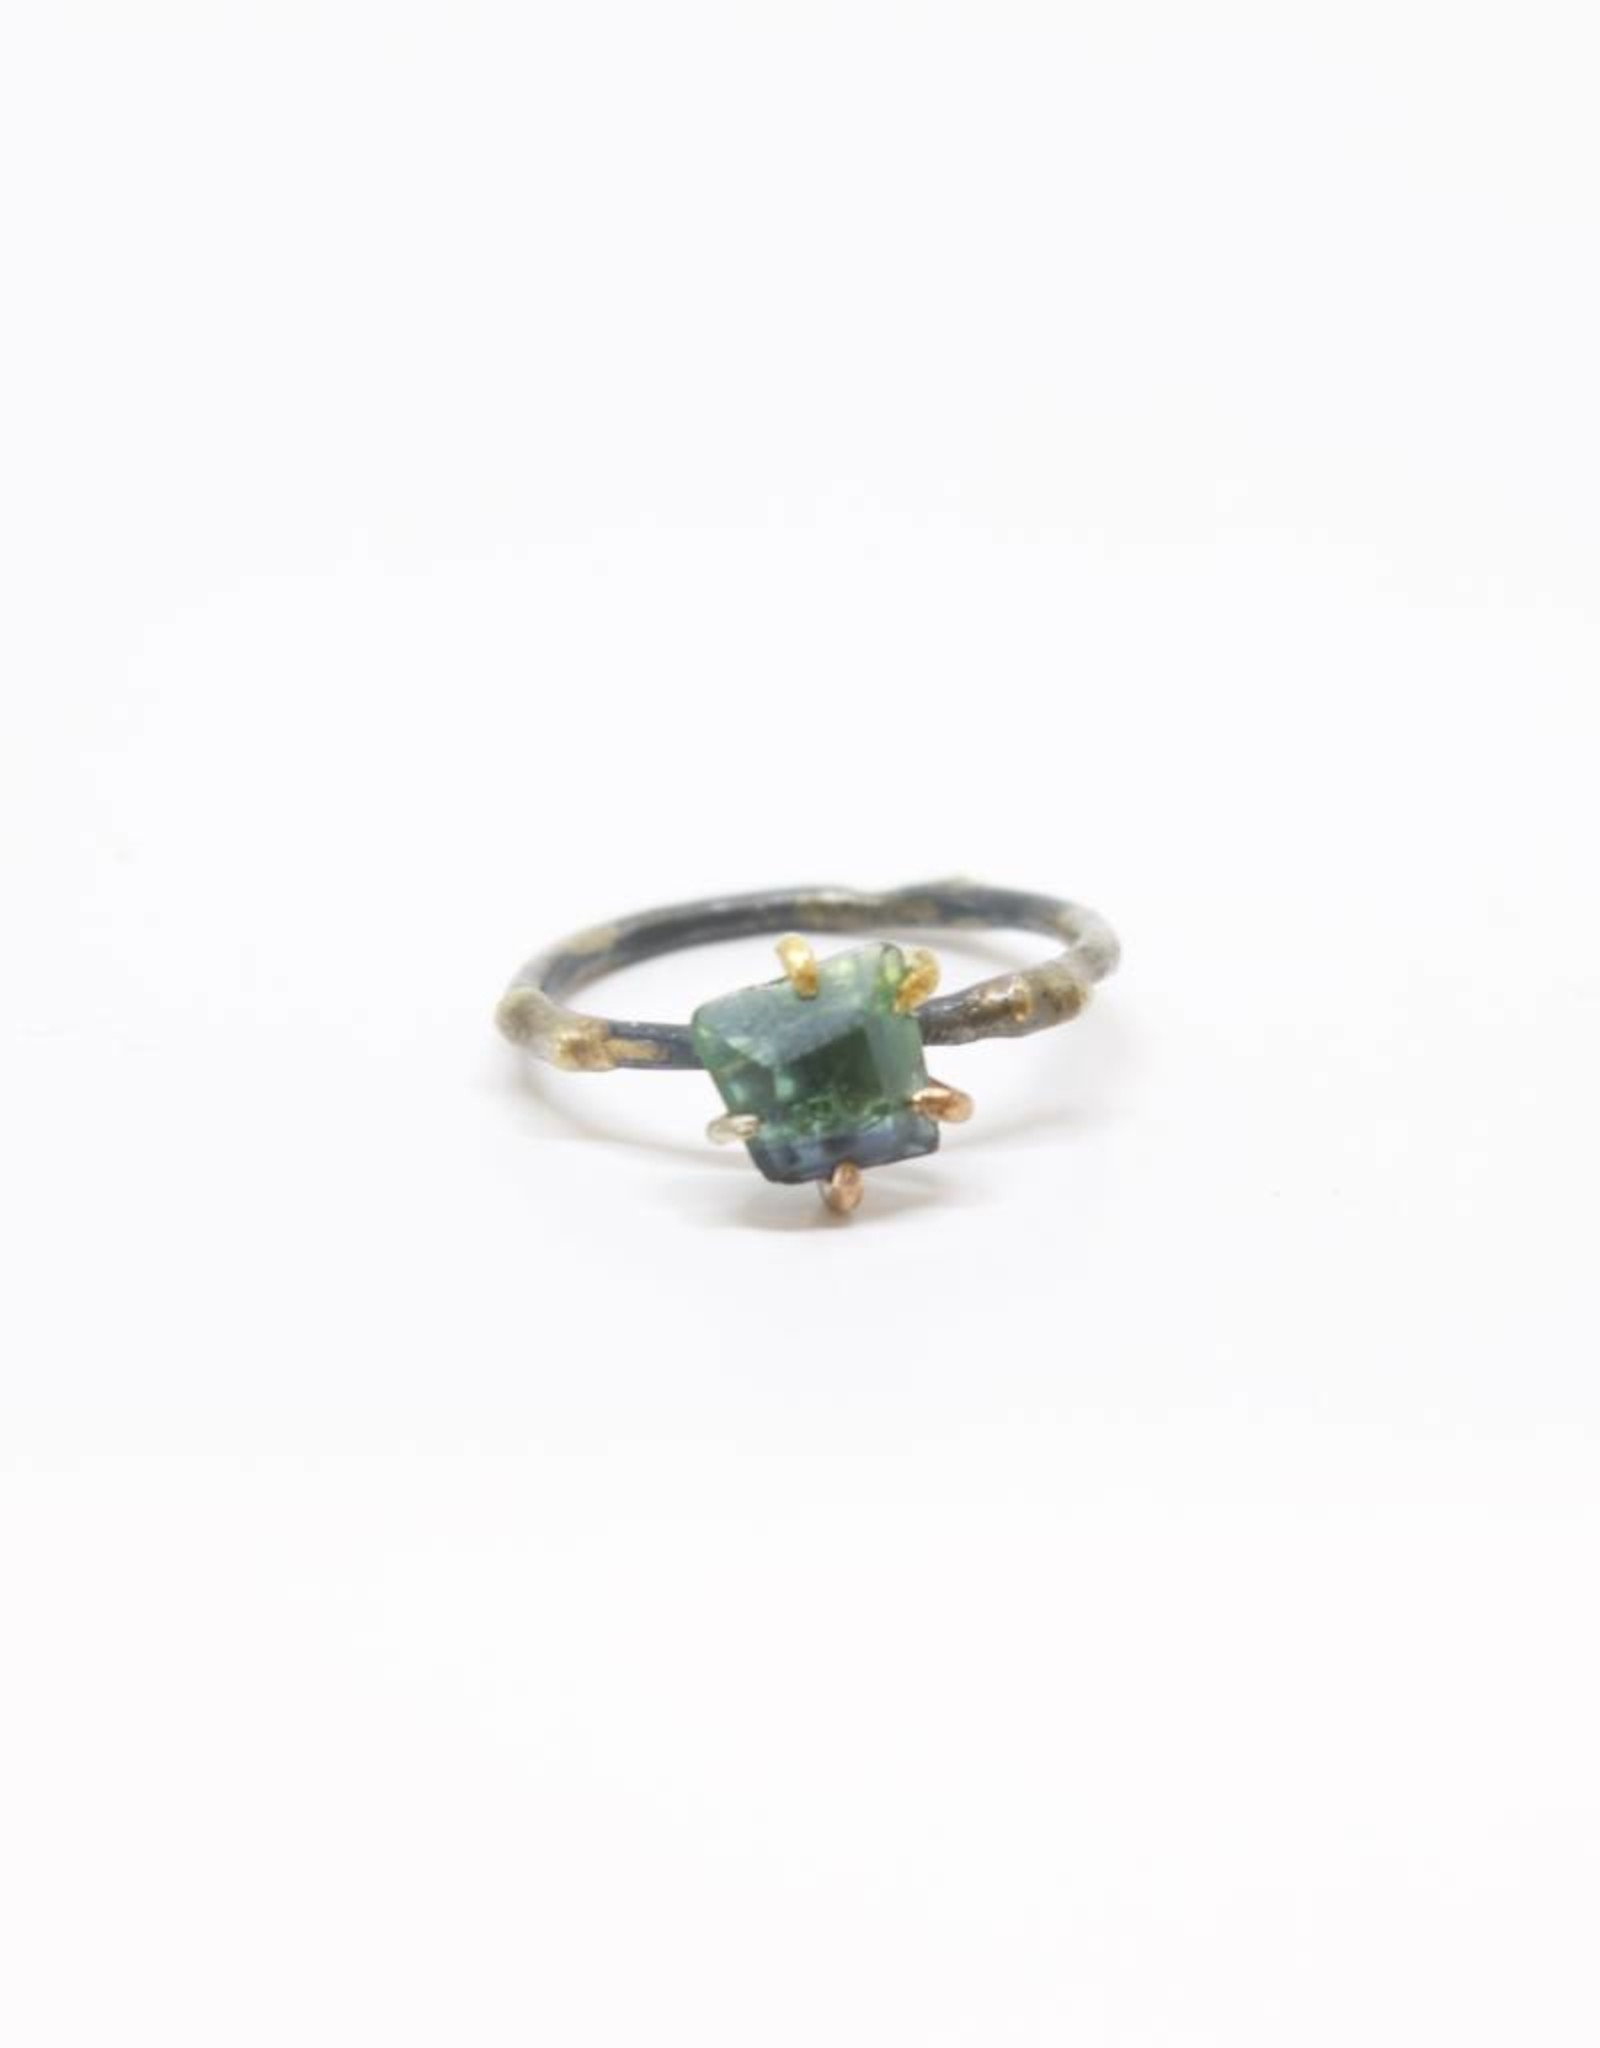 Variance Objects Green Tourmaline Small Ring